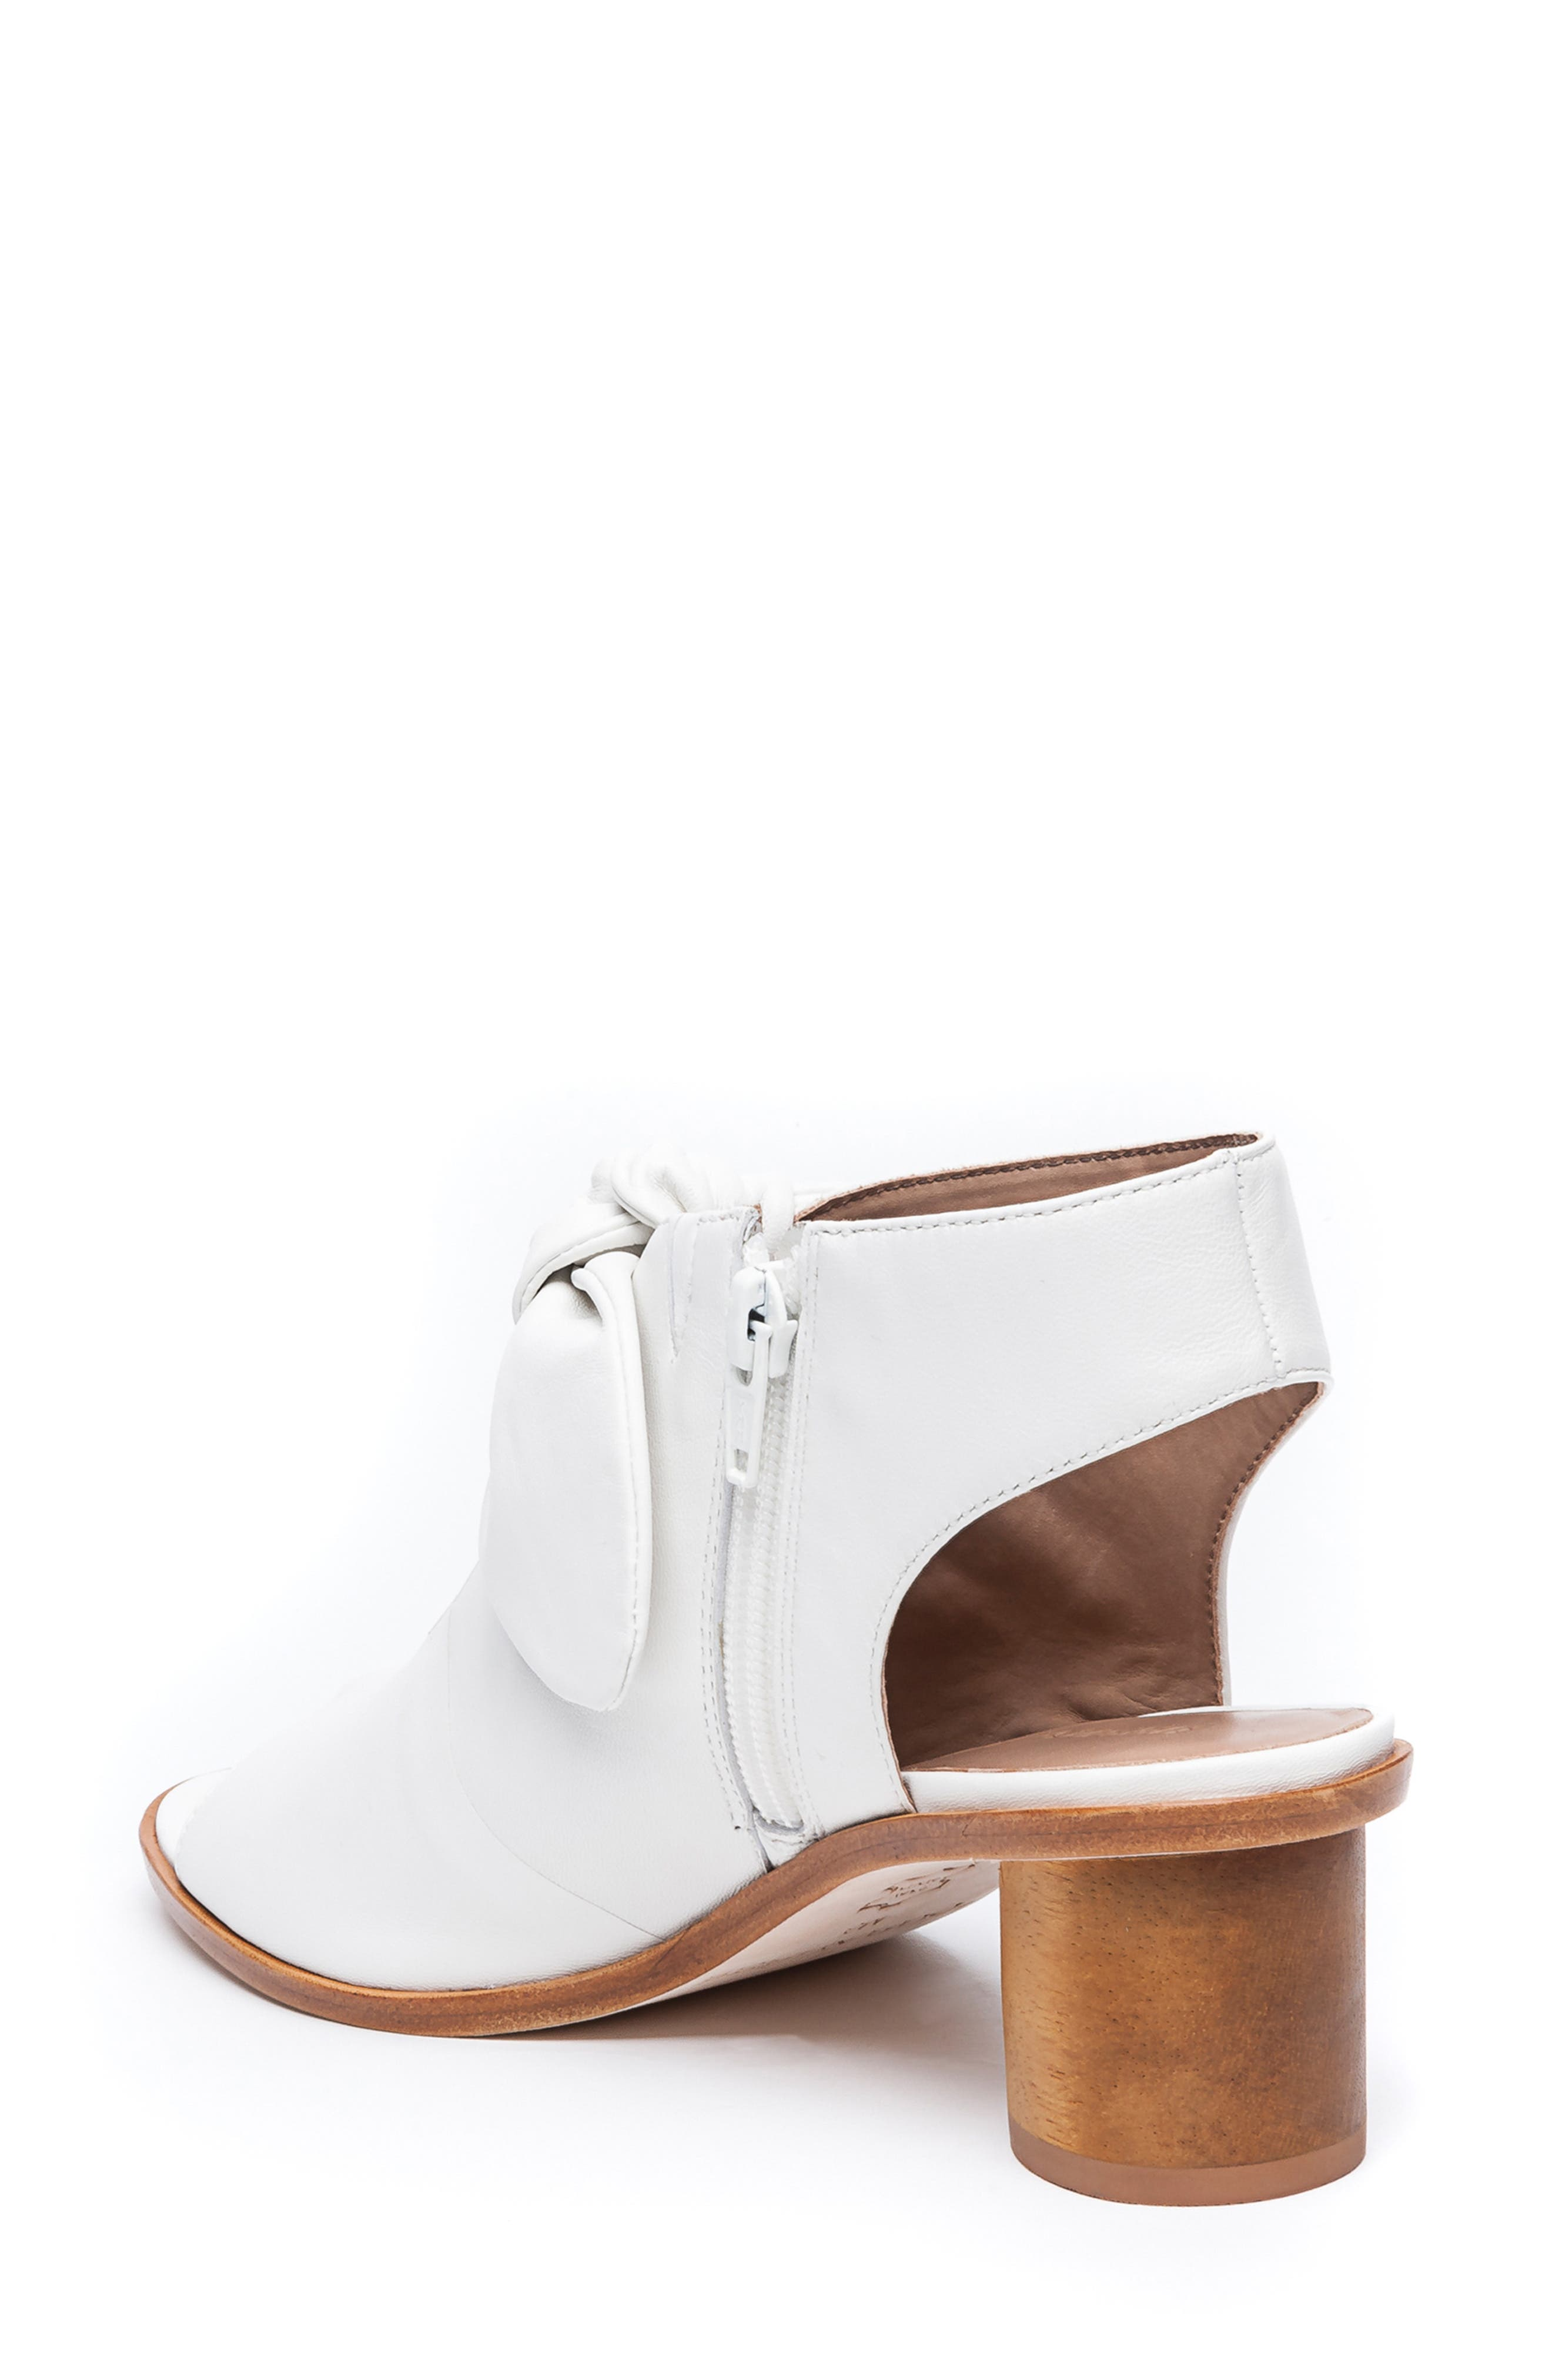 Bernardo Luna Sandal,                             Alternate thumbnail 2, color,                             WHITE LEATHER